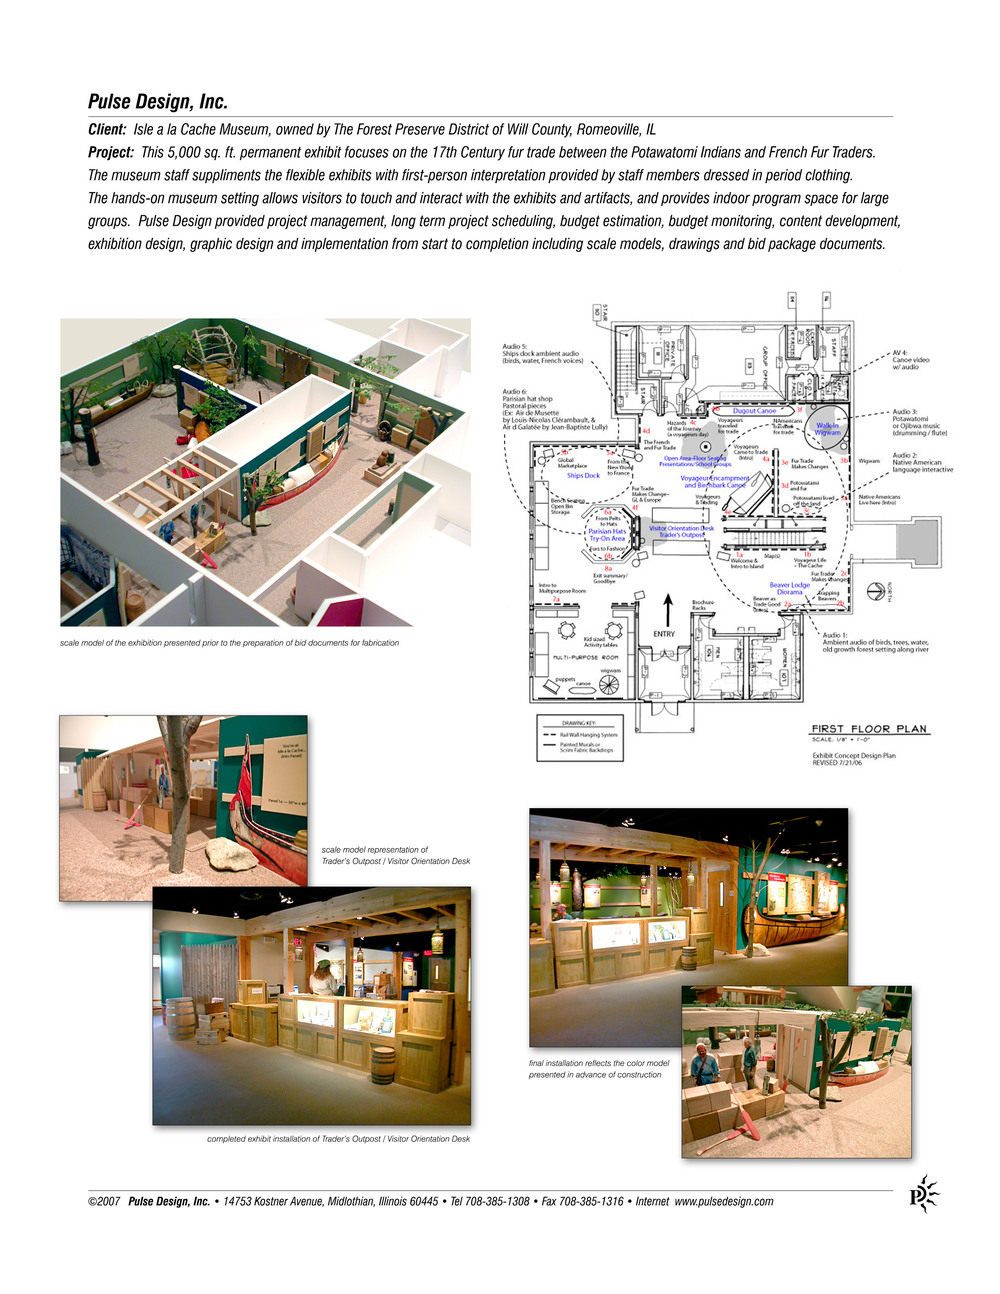 Isla-a-la-Cache-Exhibit-Model-Compair1-Pulse-Design-Inc.jpg